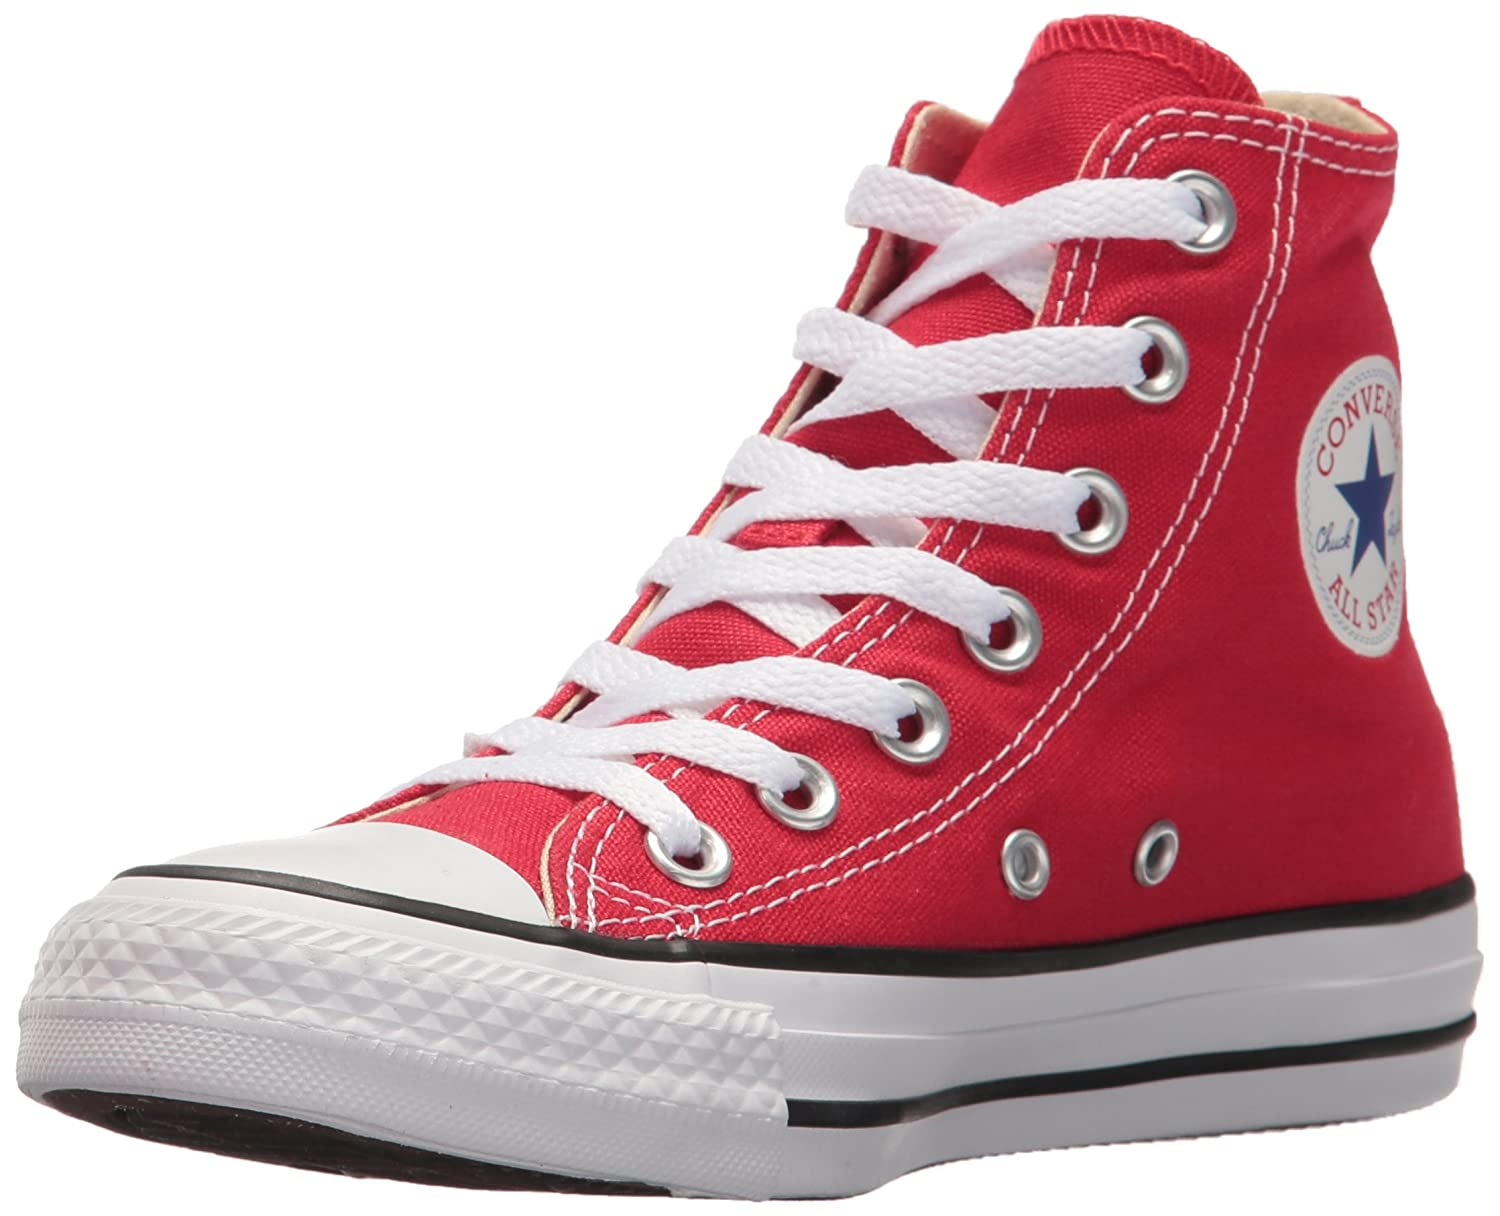 Converse Chuck Taylor All Star High Top B06Y1S7DL7 18 US Men/20 US Women|Red